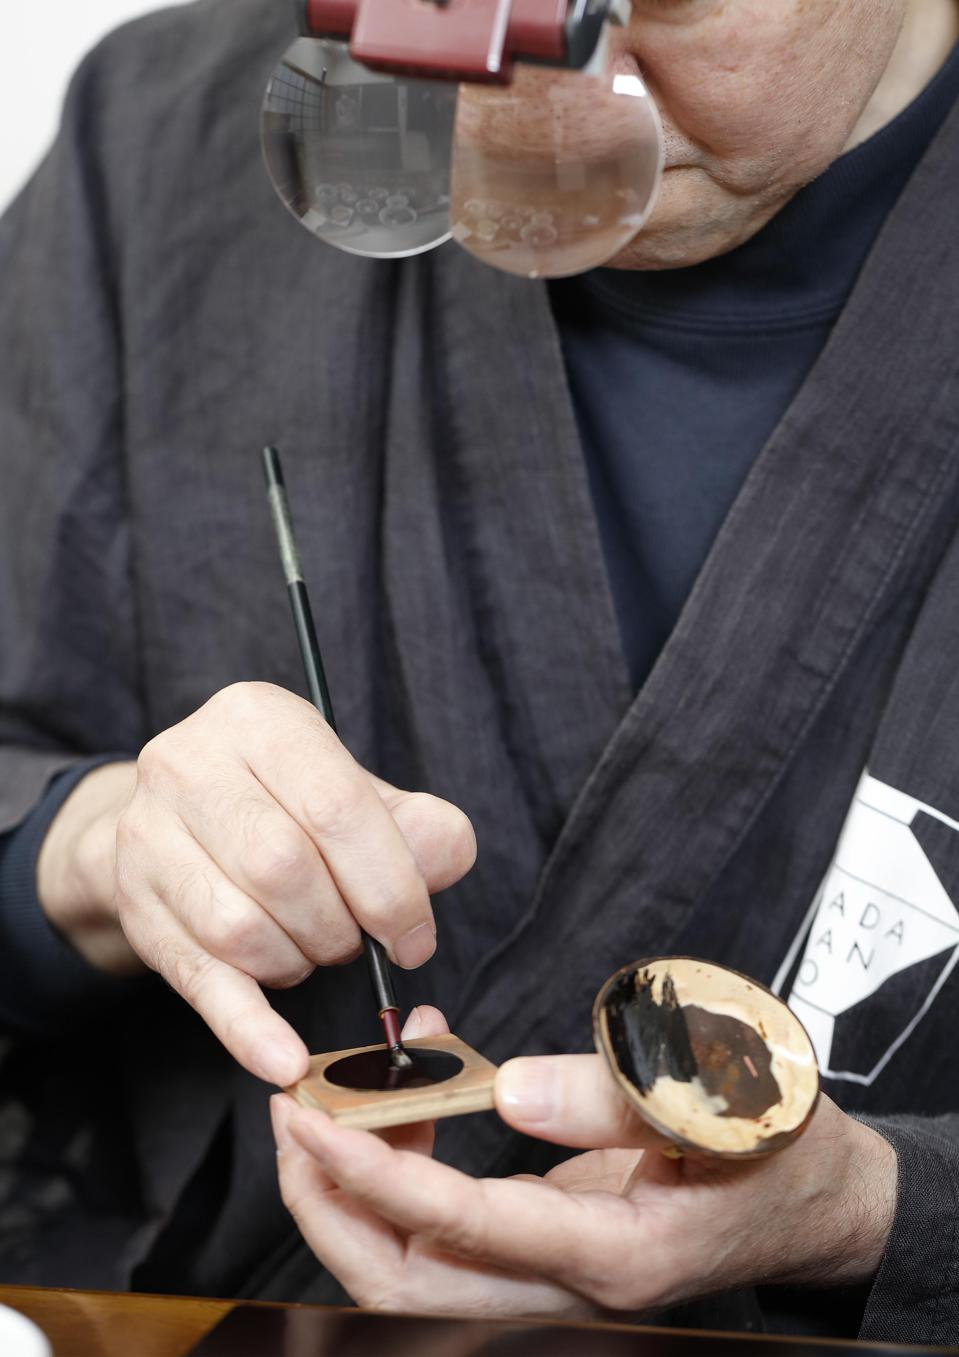 Traditional techniques were used to create the watch dials, handcrafted in Japan.